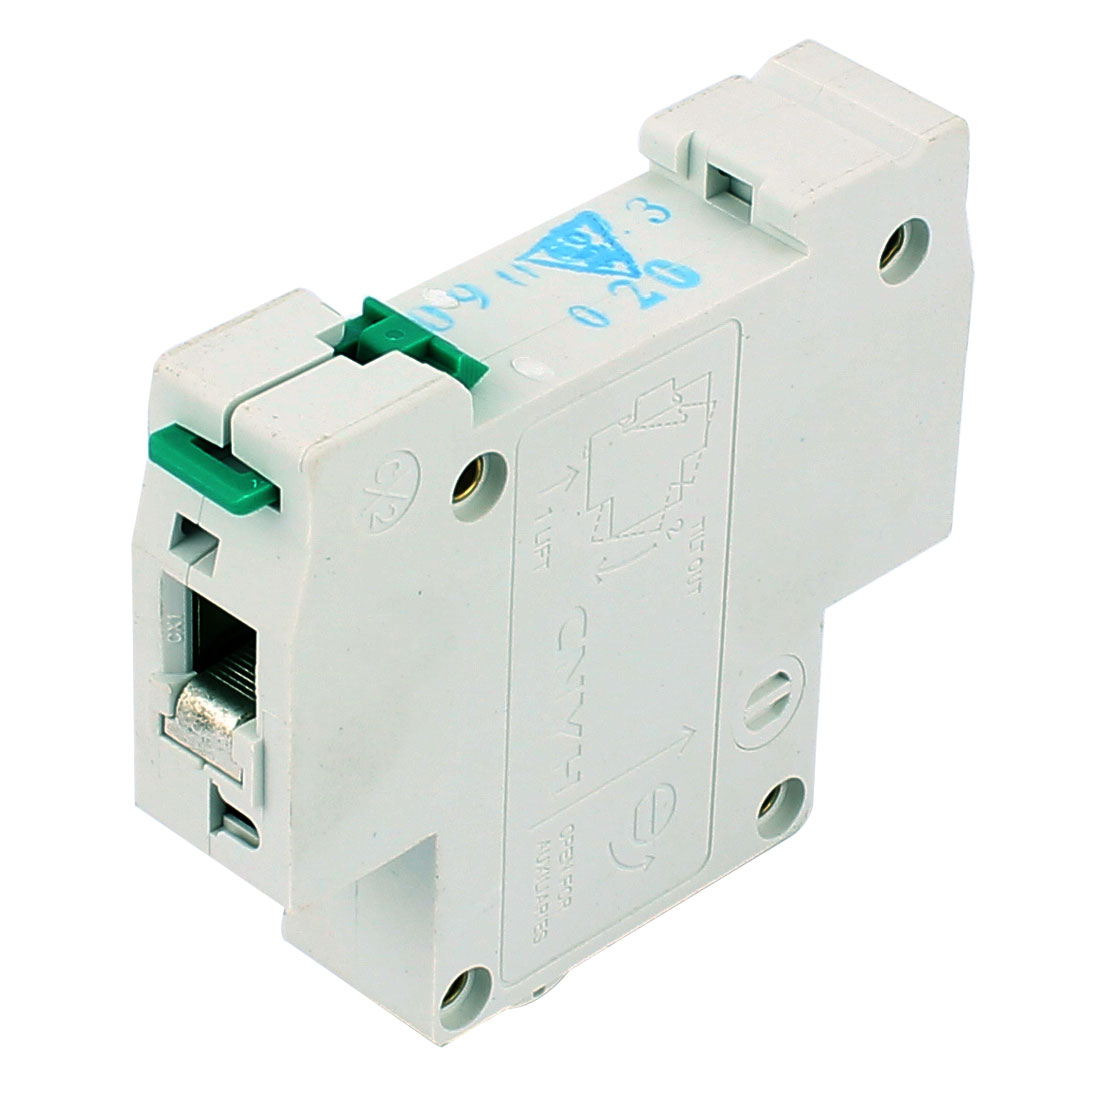 AC 230V/400V 20A 4500A One Pole Overload Protection Miniature Circuit Breaker